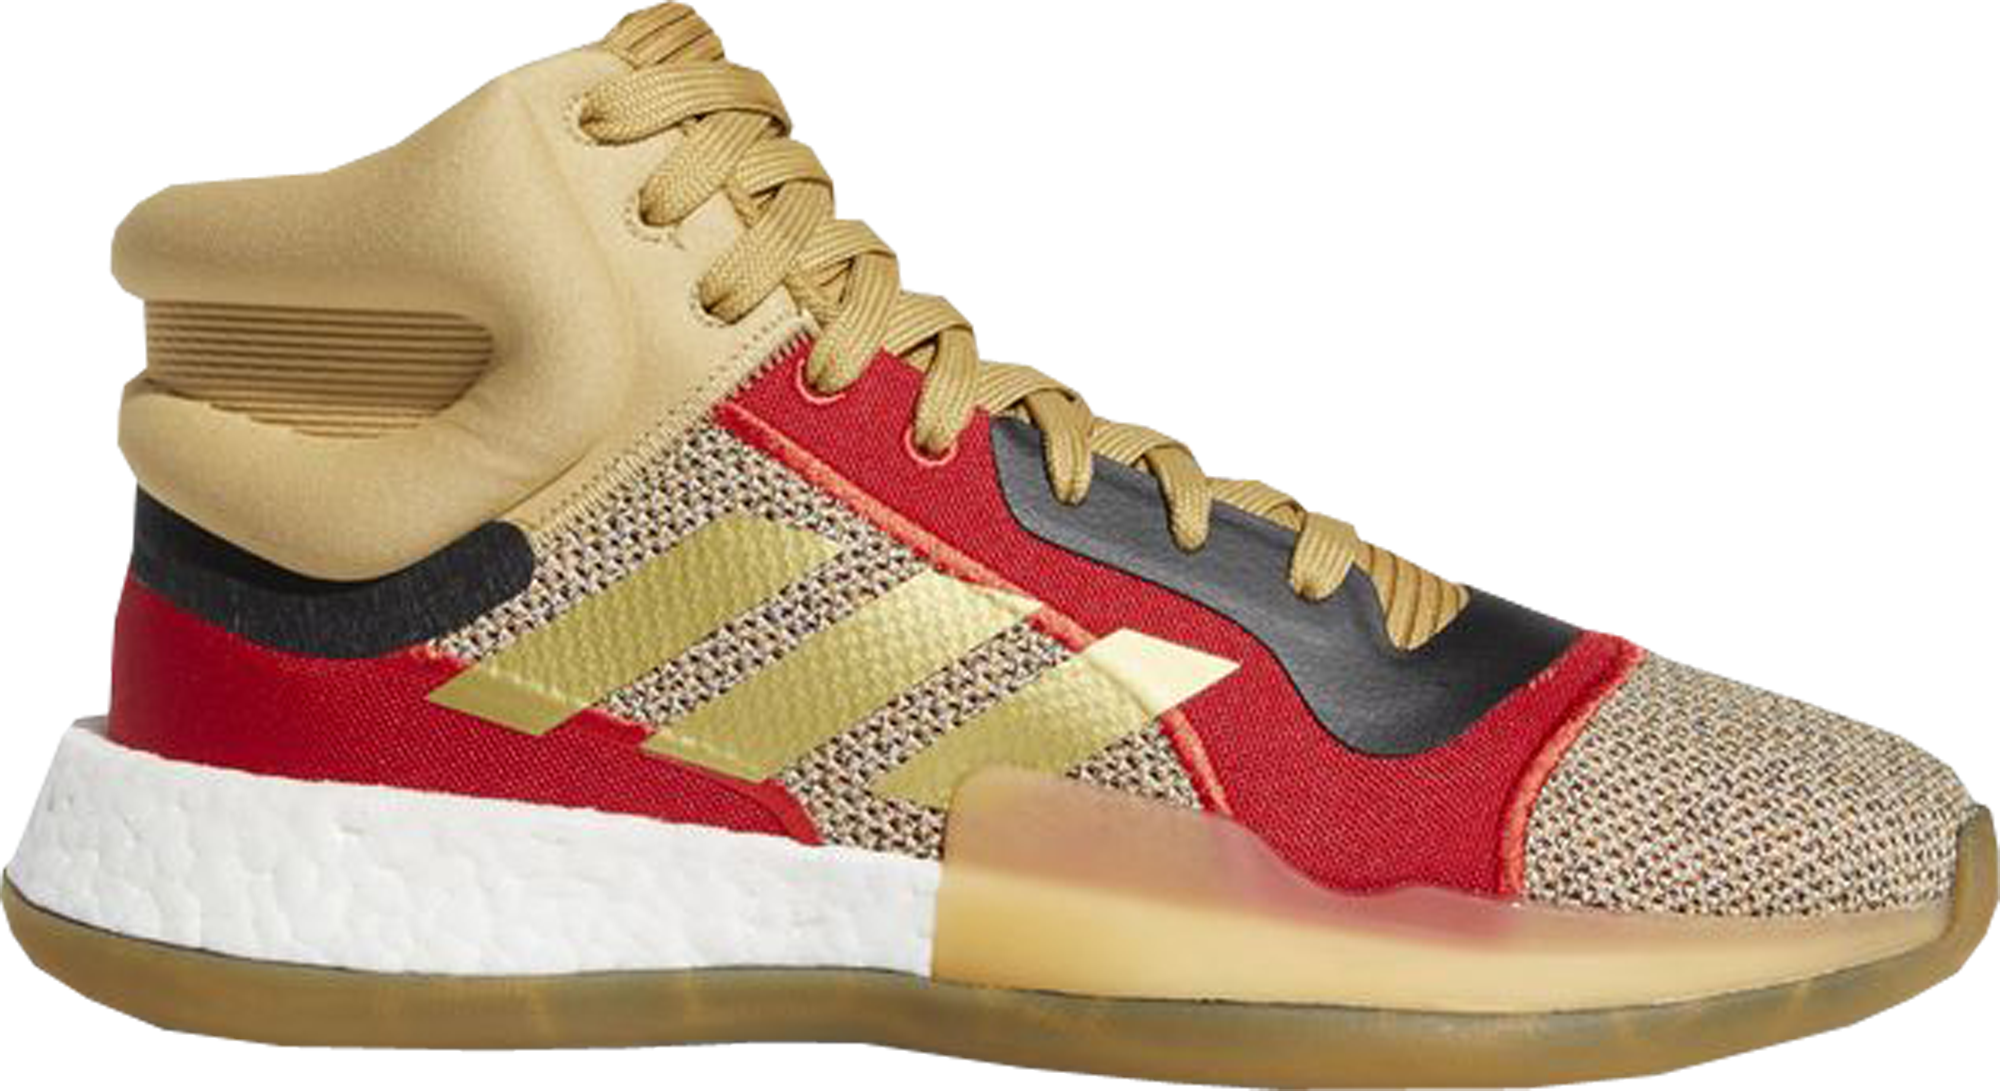 adidas Marquee Boost Gold Black Red